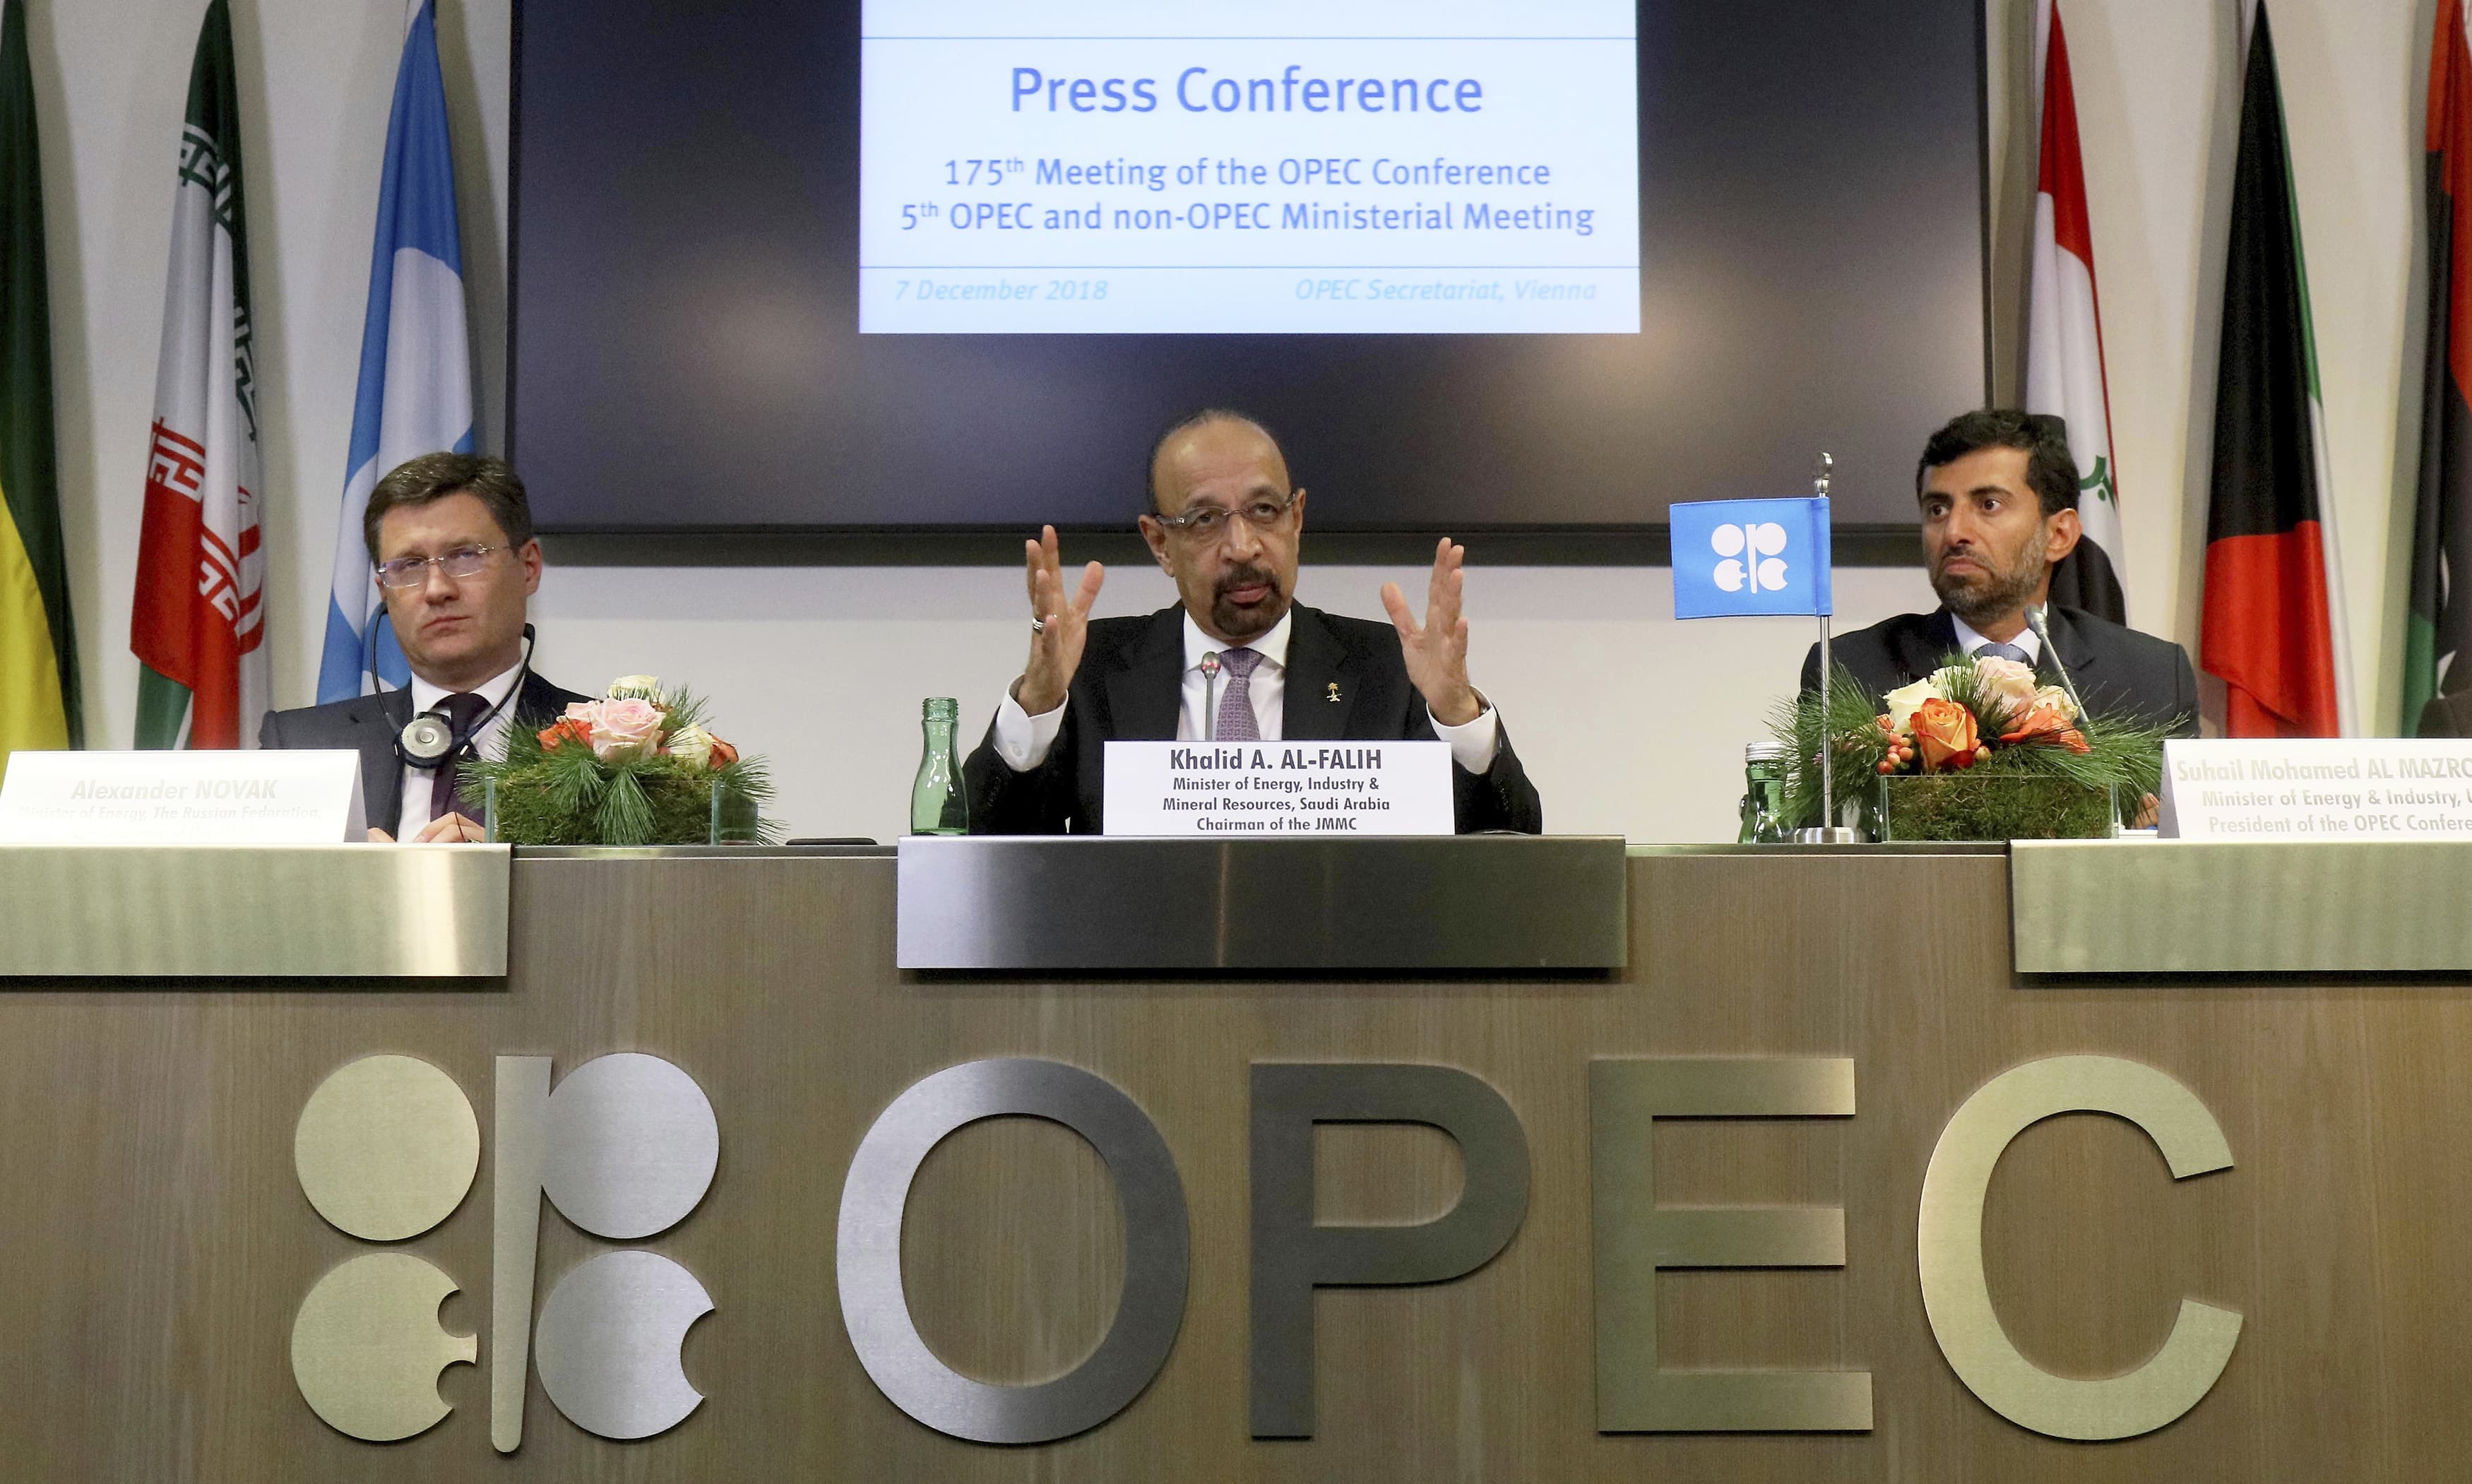 Russian Minister of Energy Alexander Novak, Minister of Energy, Industry and Mineral Resources of Saudi Arabia Khalid Al-Falih and Minister of Energy of the United Arab Emirates Suhail Mohamed Al Mazrouei (from left) attend a news conference after a meeting of OPEC, and non OPEC members in Vienna. —AP